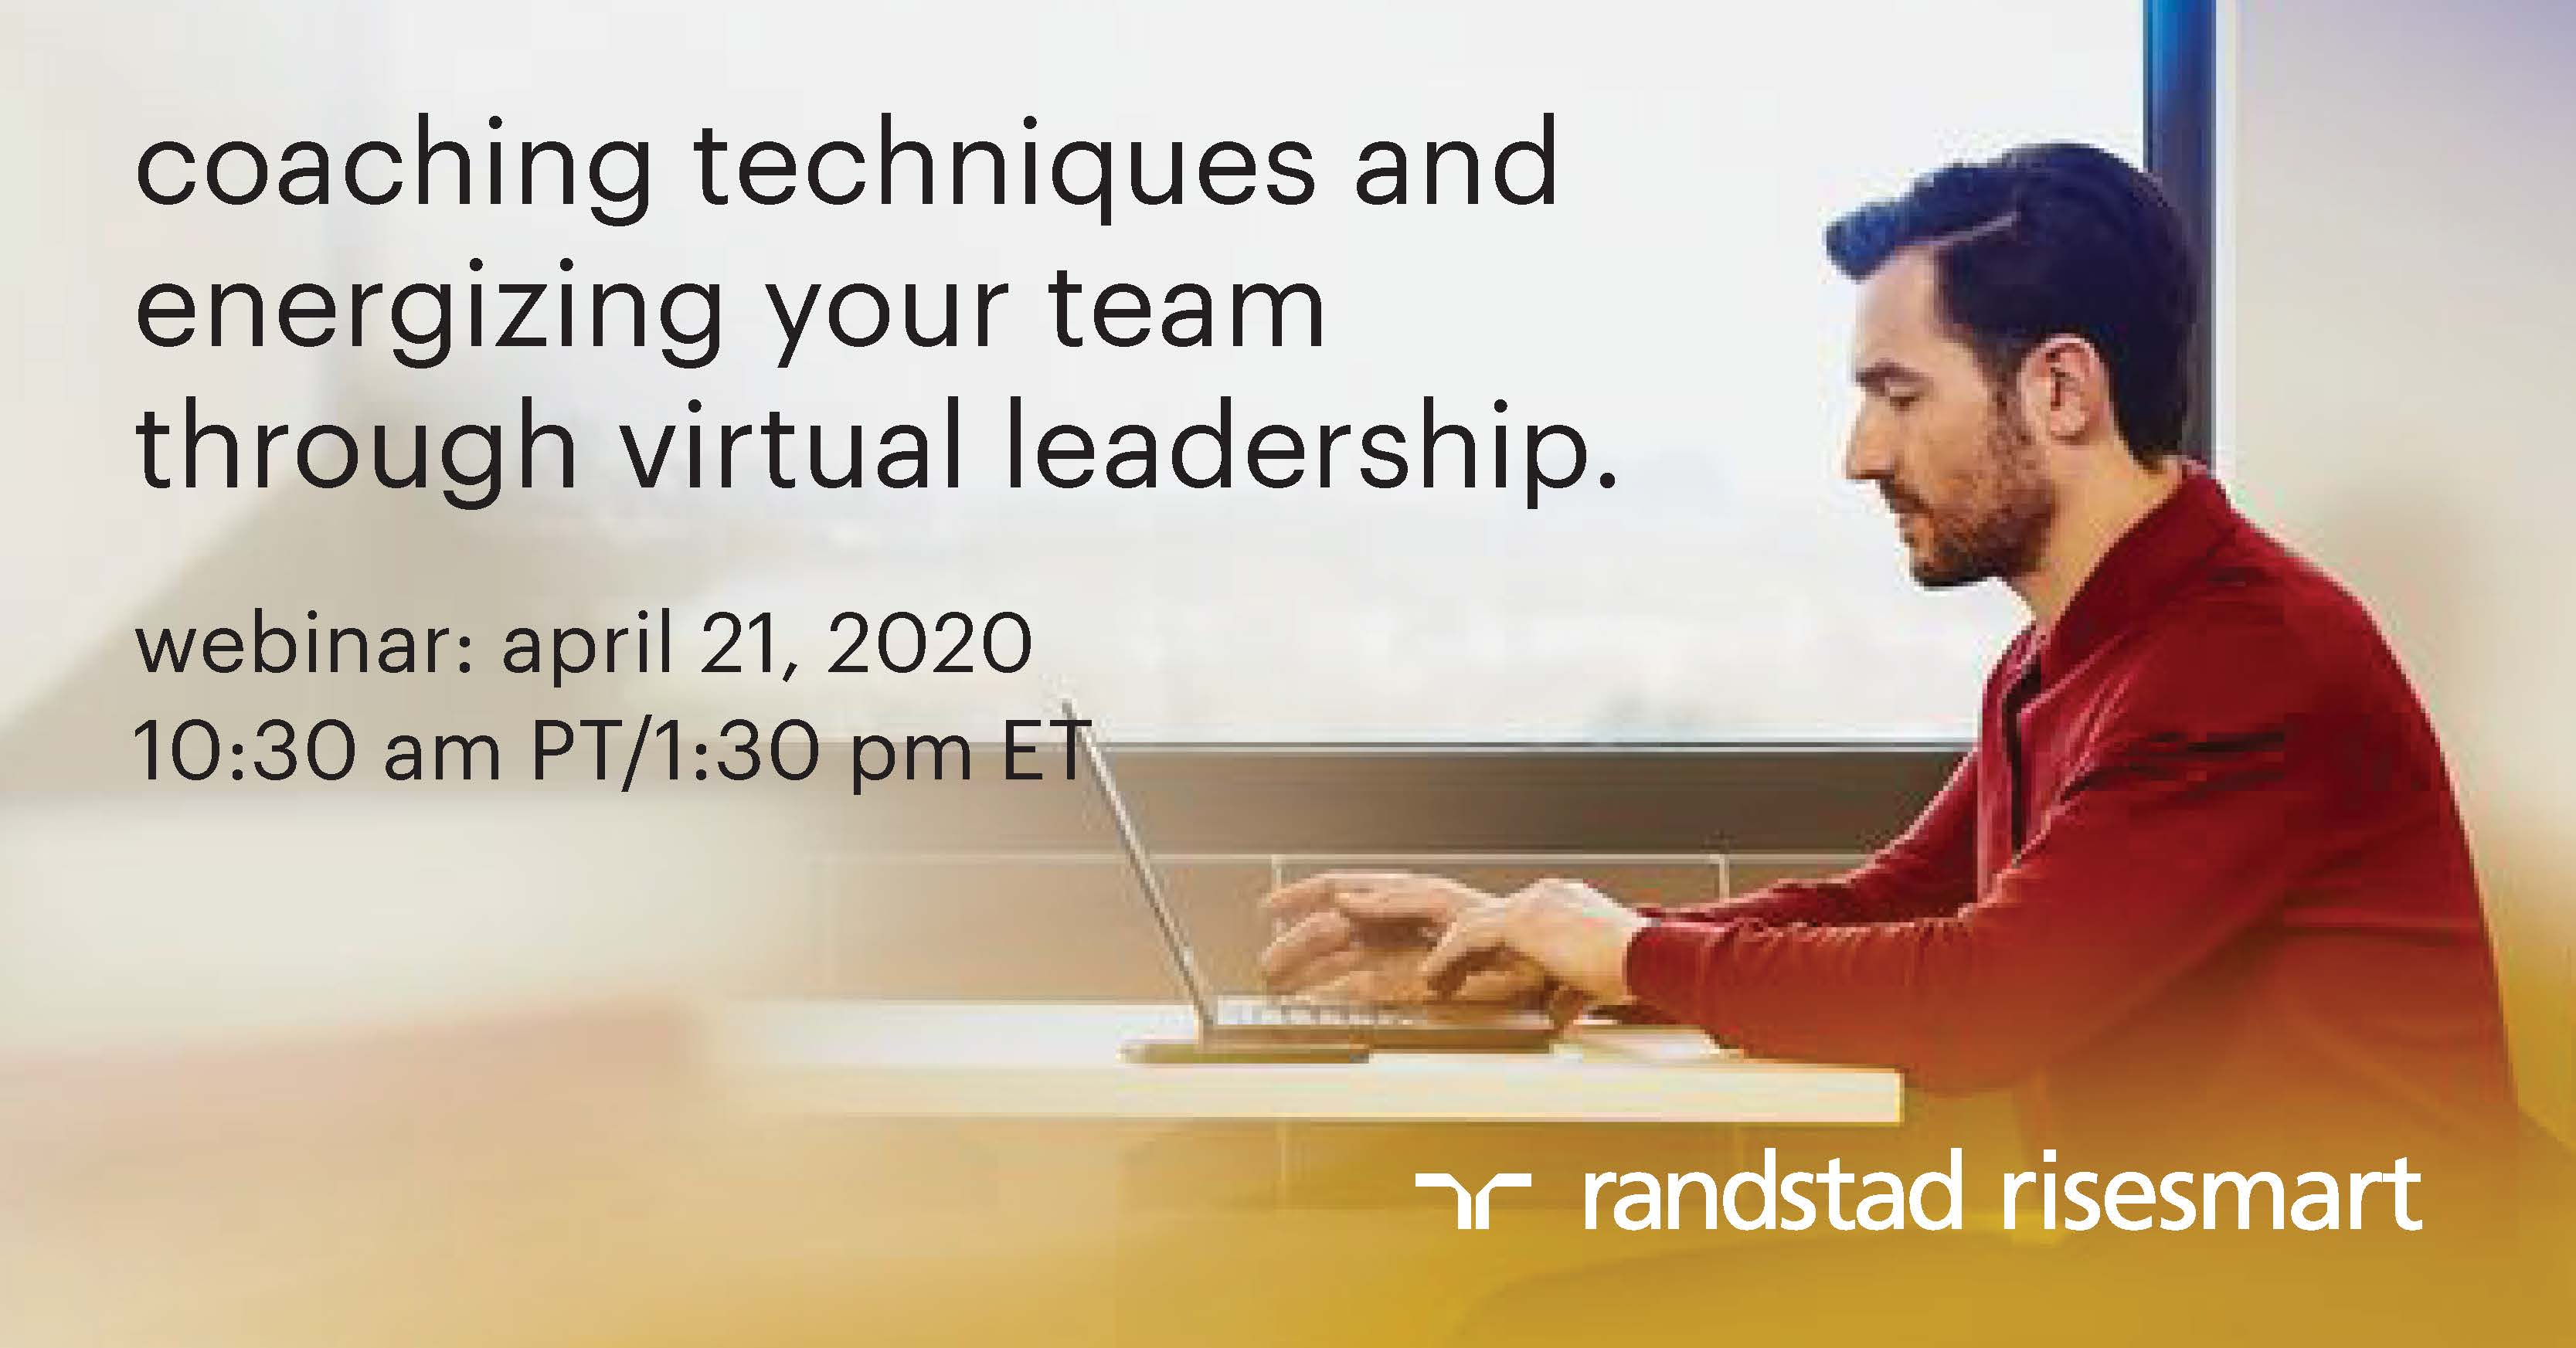 coaching techniques and energizing your team through virtual leadership